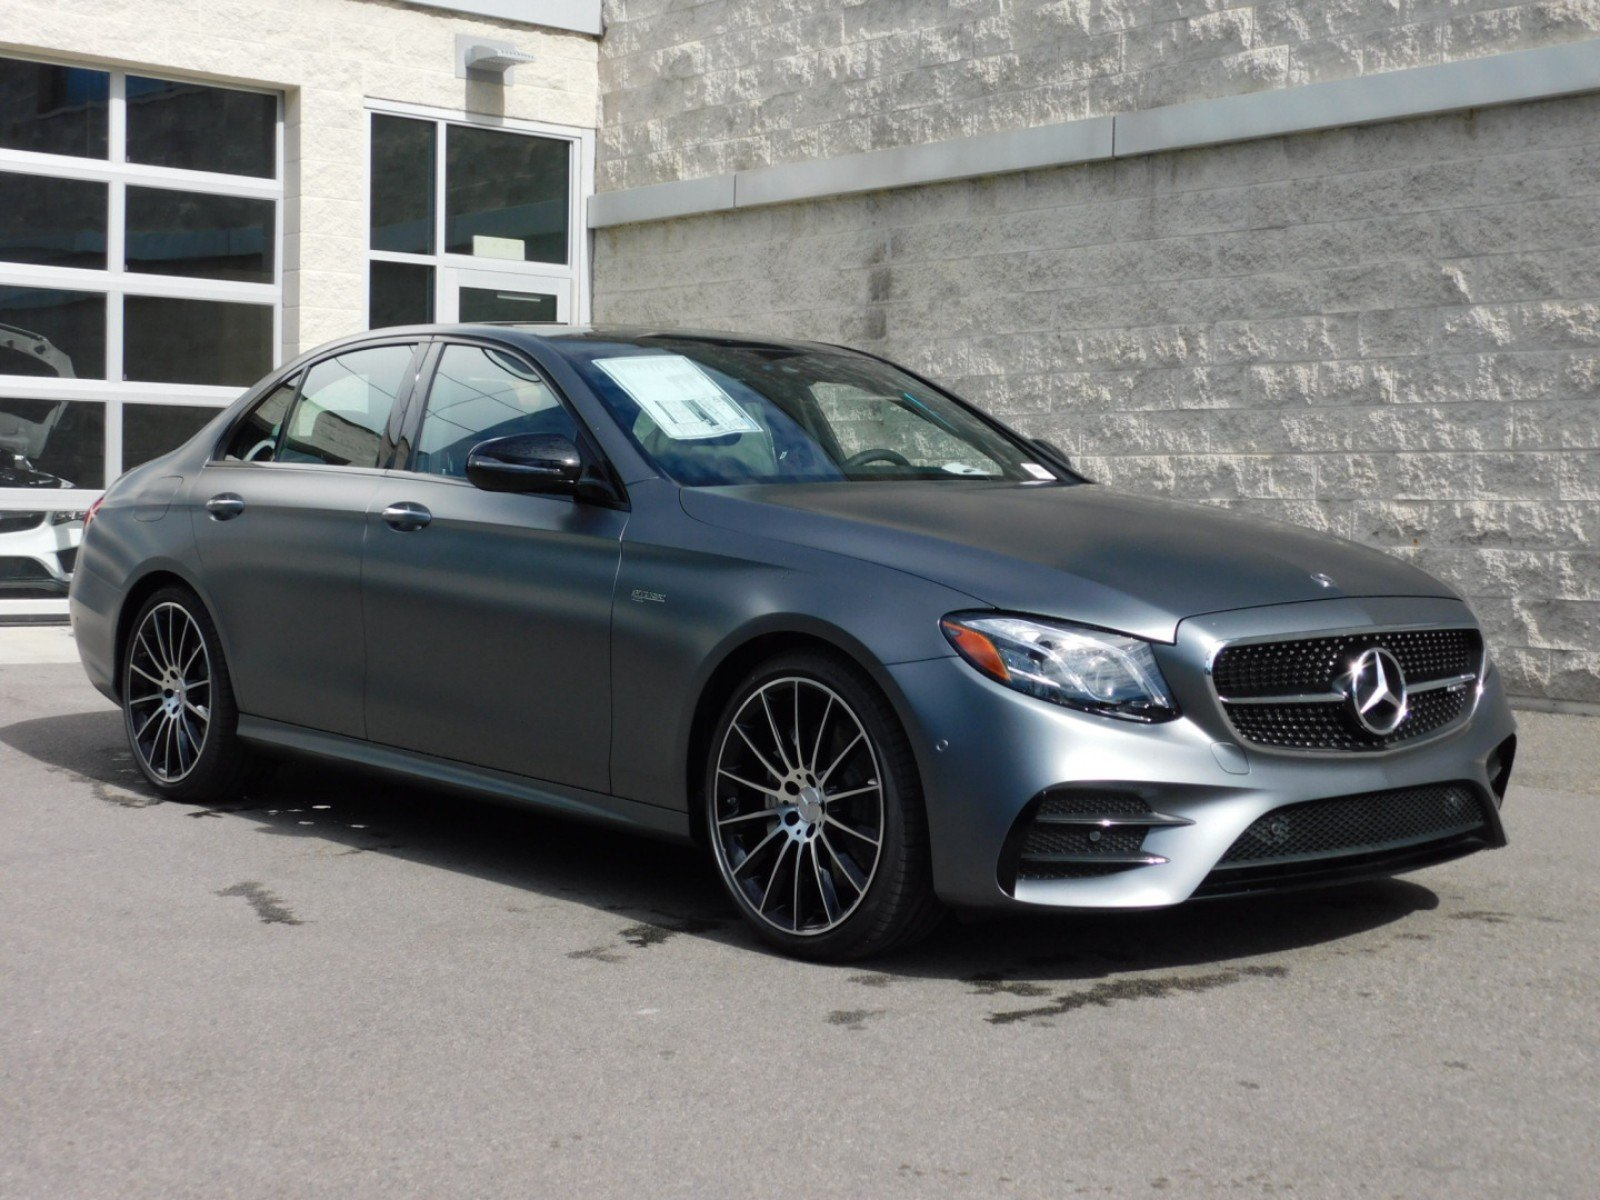 New 2018 Mercedes Benz E Class AMG E 43 SEDAN in Salt Lake City